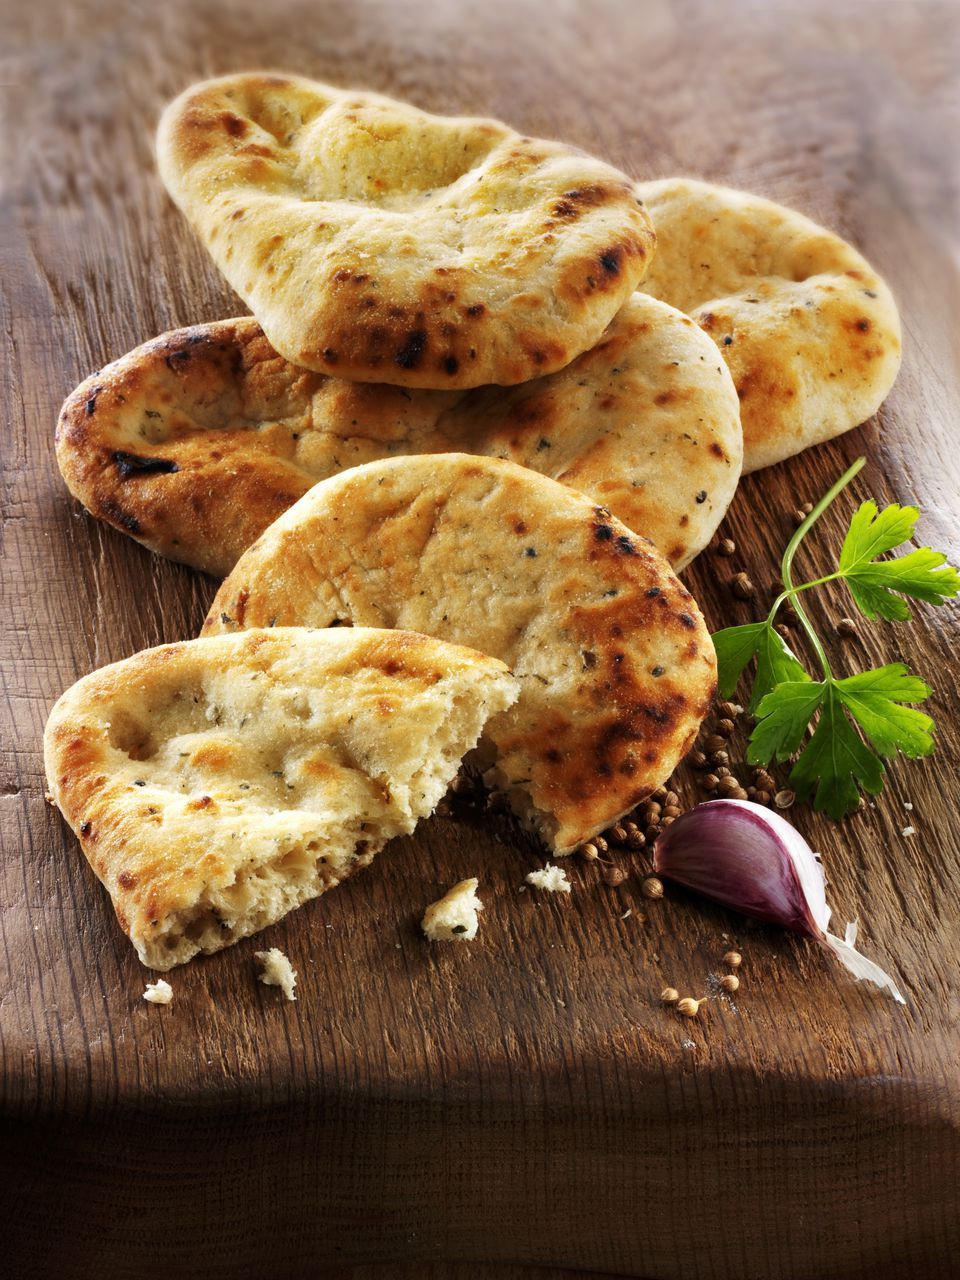 Middle Eastern Breads Recipes  Middle Eastern Pita Bread Recipe